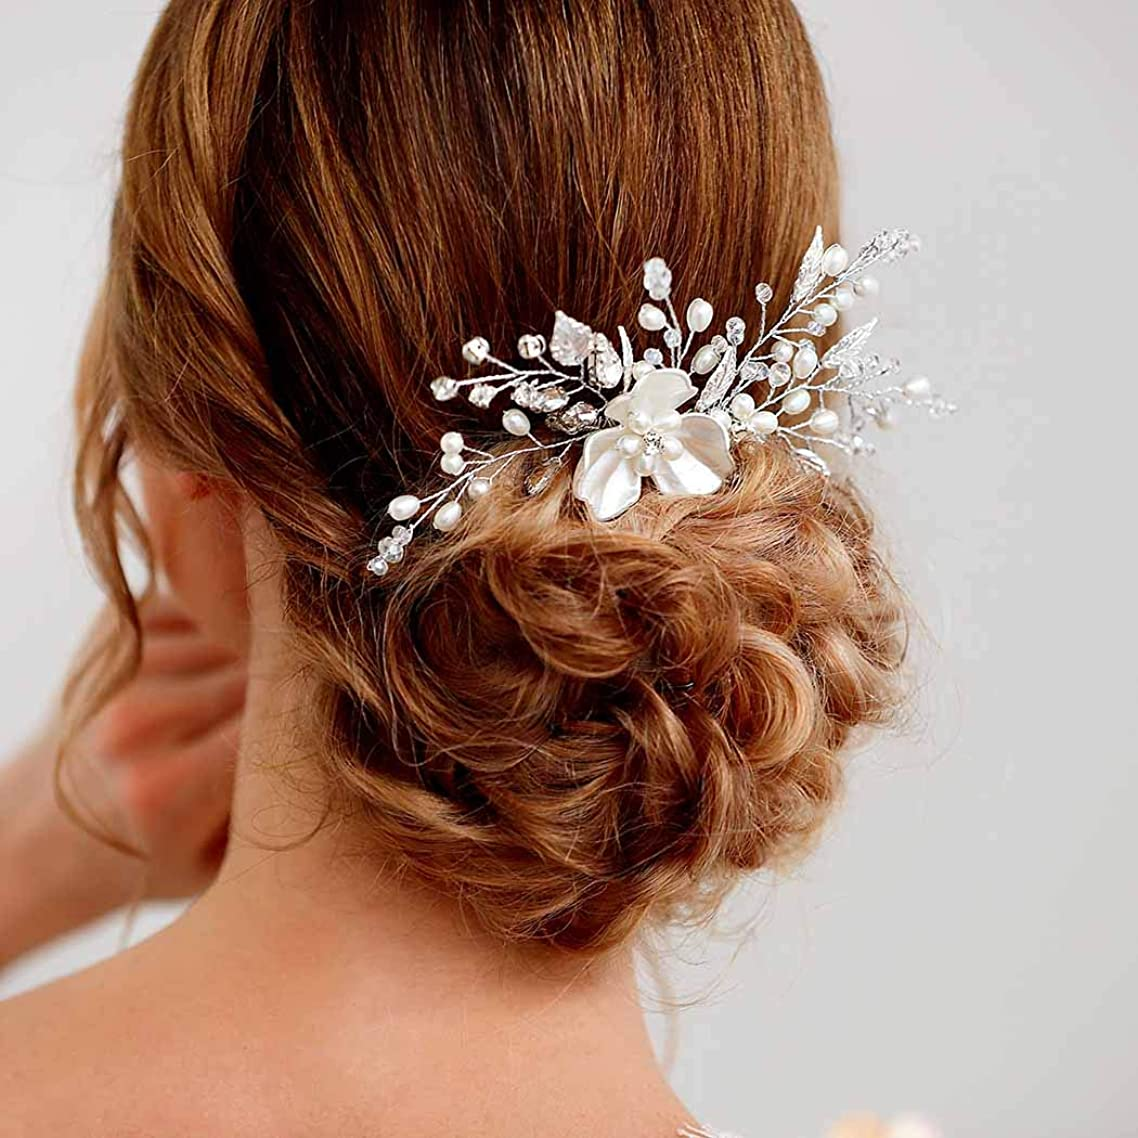 UPSTONE Flower Wedding Hair Combs Crystal Bridal Headpiece Bead Hair Accessories for Women and Girls(Silver)